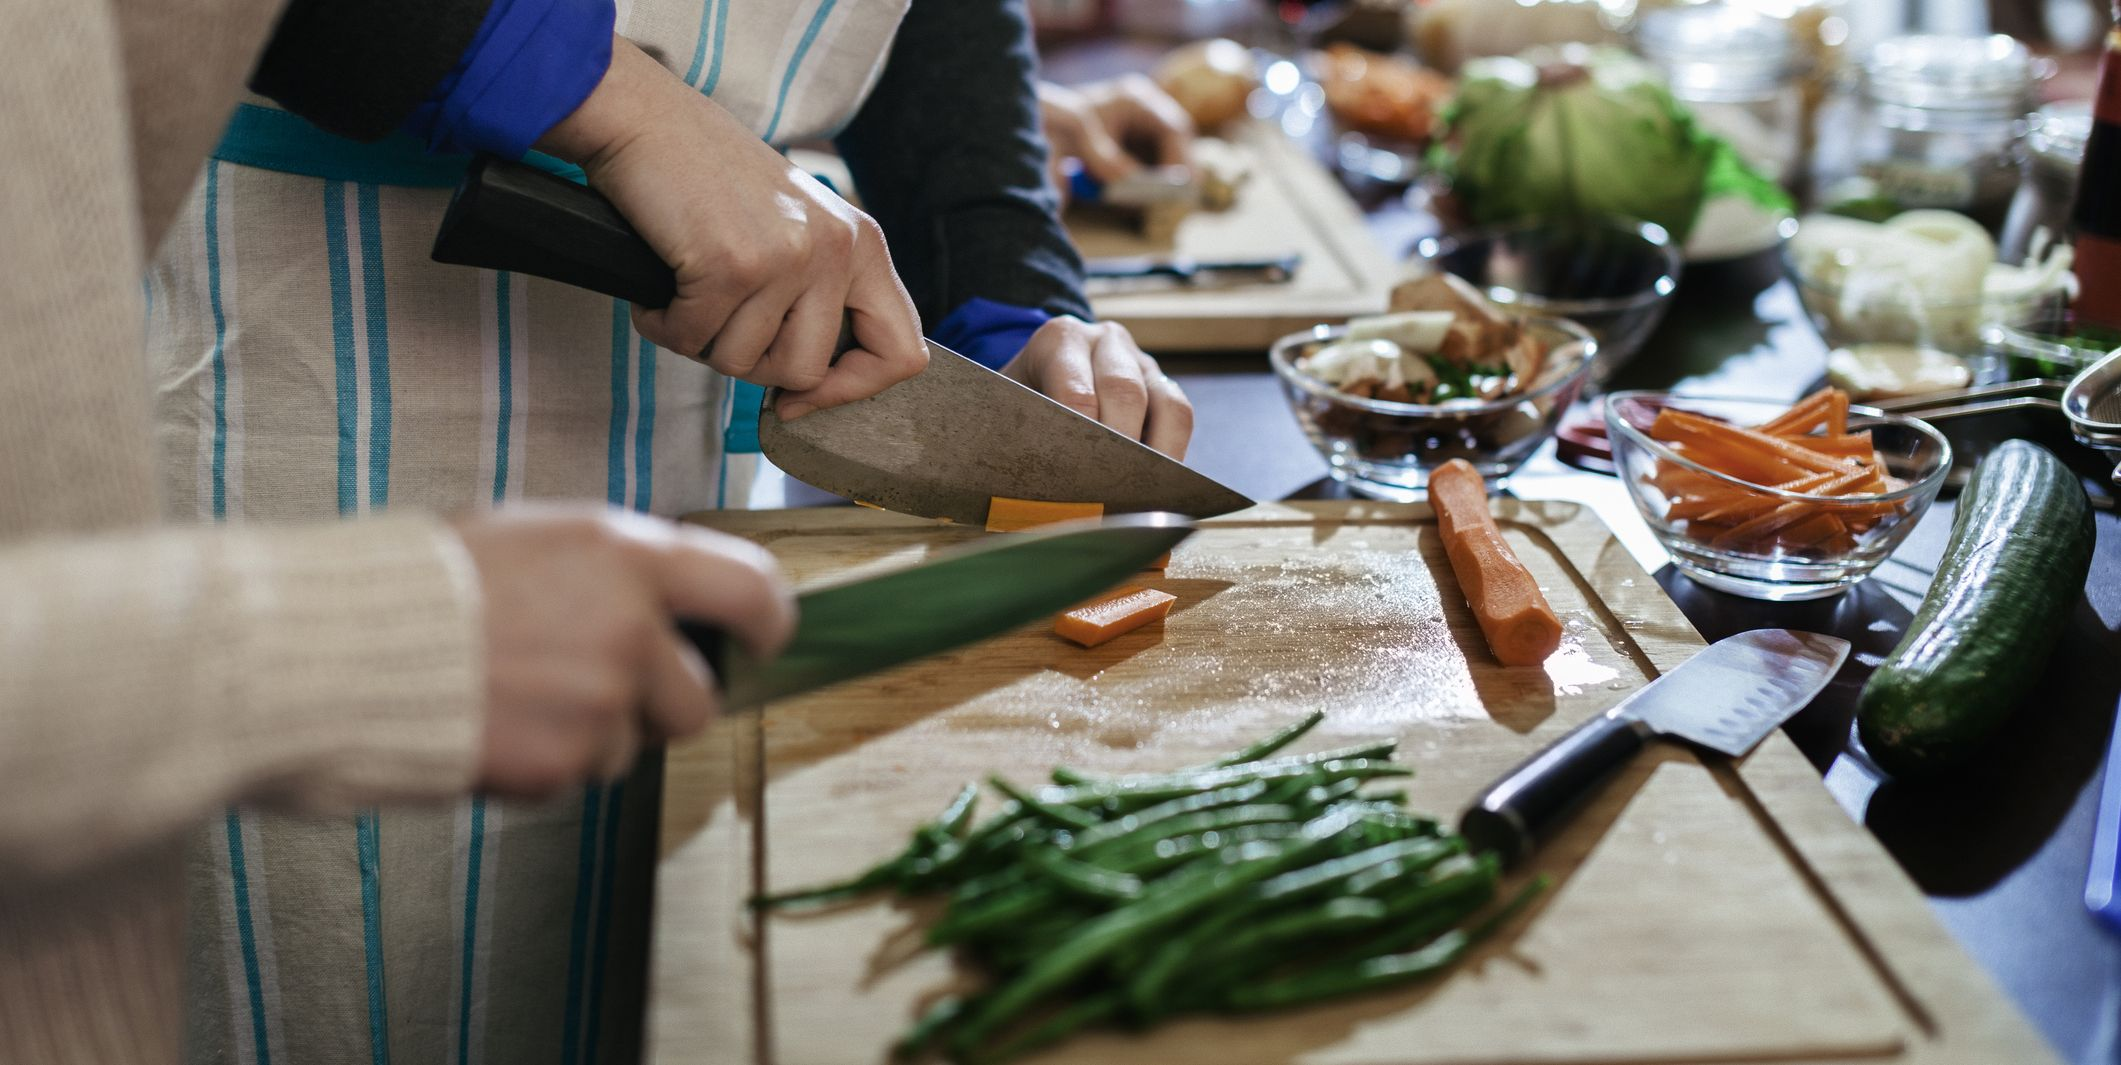 Participants of cooking class cutting carrots